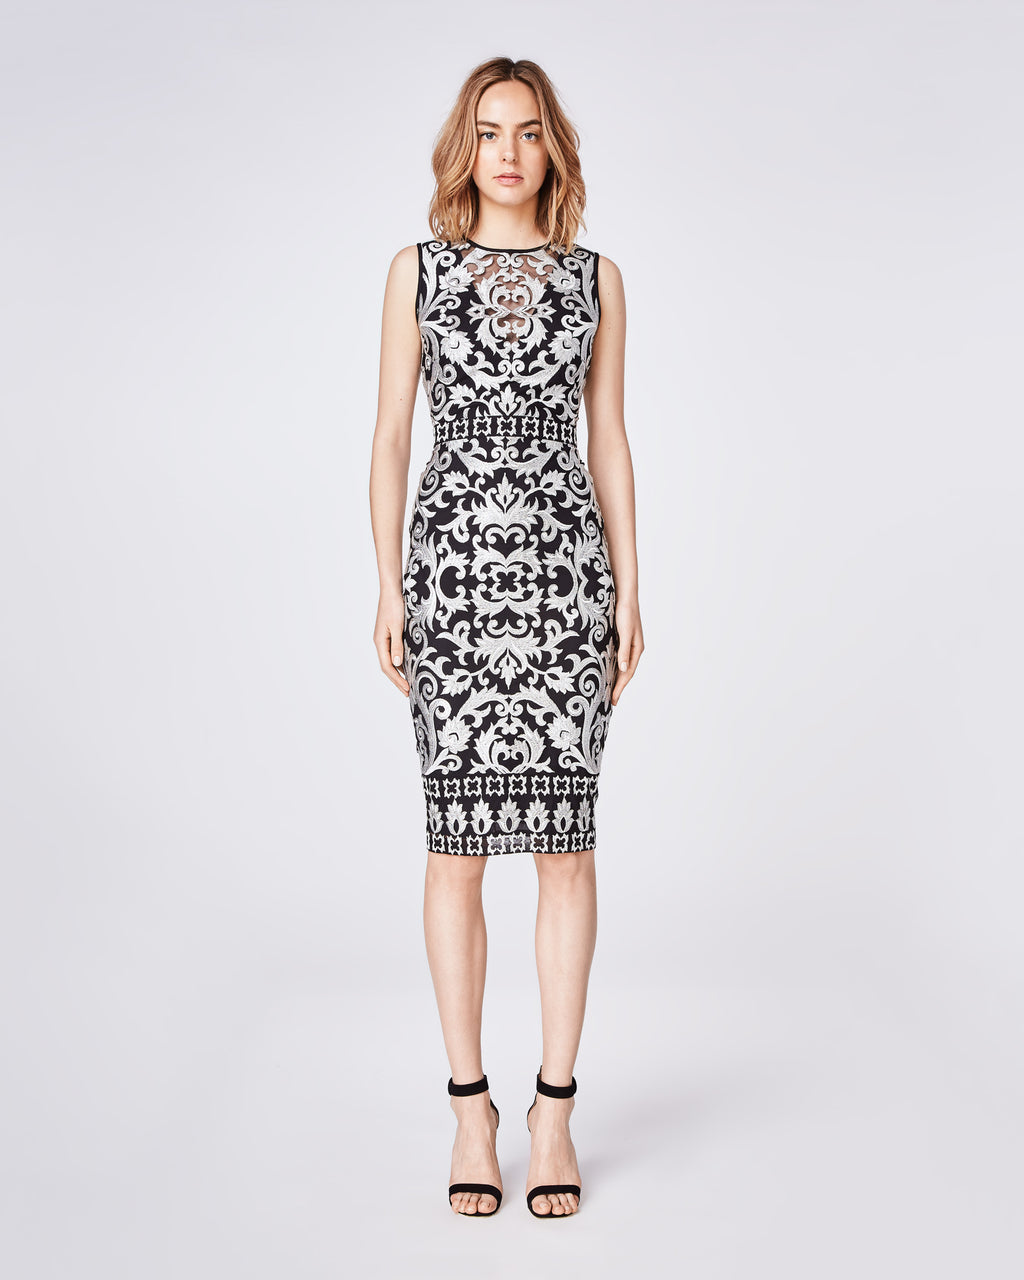 CD10080 - SCROLL EMBROIDERY SLEEVELESS ILLUSION DRESS - dresses - midi - A classic fitted, sleeveless sheath dress is the perfect holiday party staple with gold embroidery detail. It feautures a center back concealed zipper with hook and eye closure. Depending on the event, style it with a leather jacket or wear solo as a statement piece.